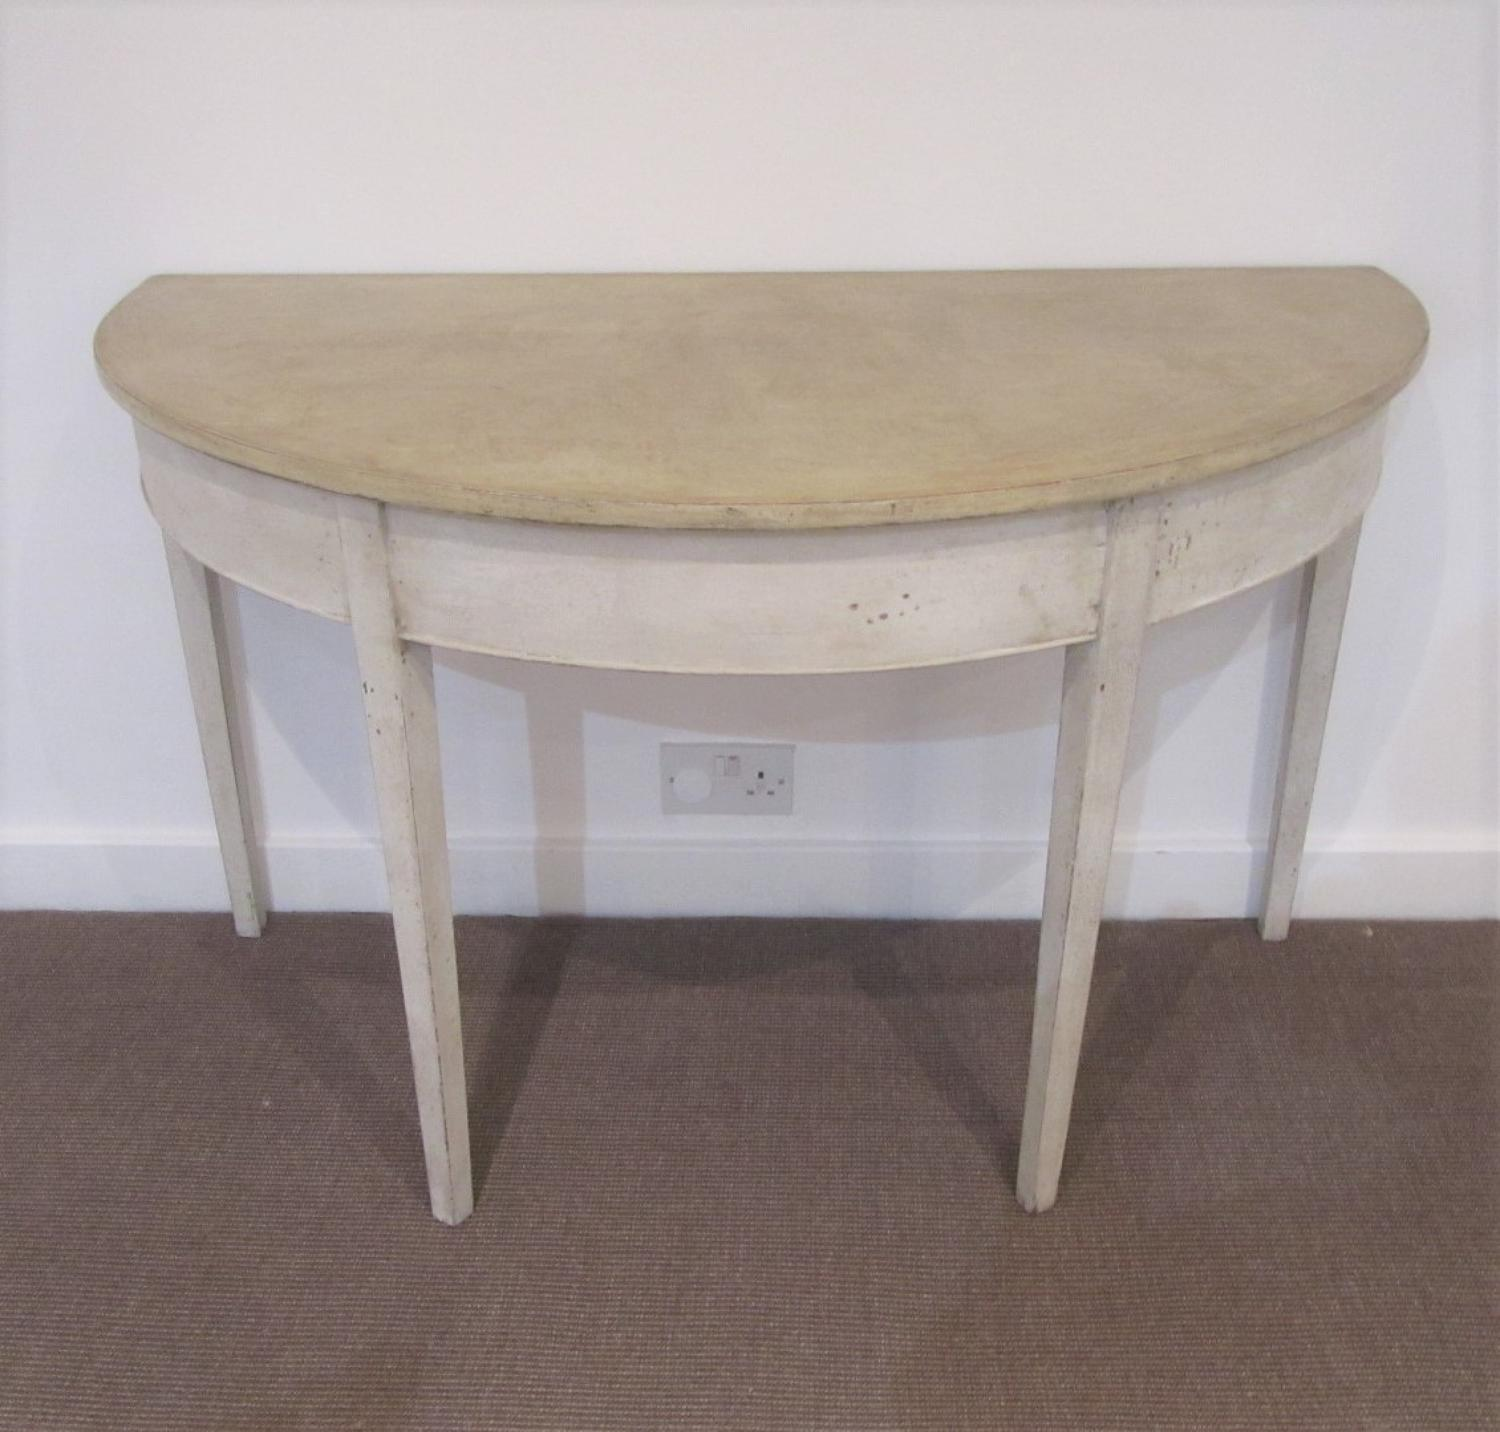 A single painted demi lune table